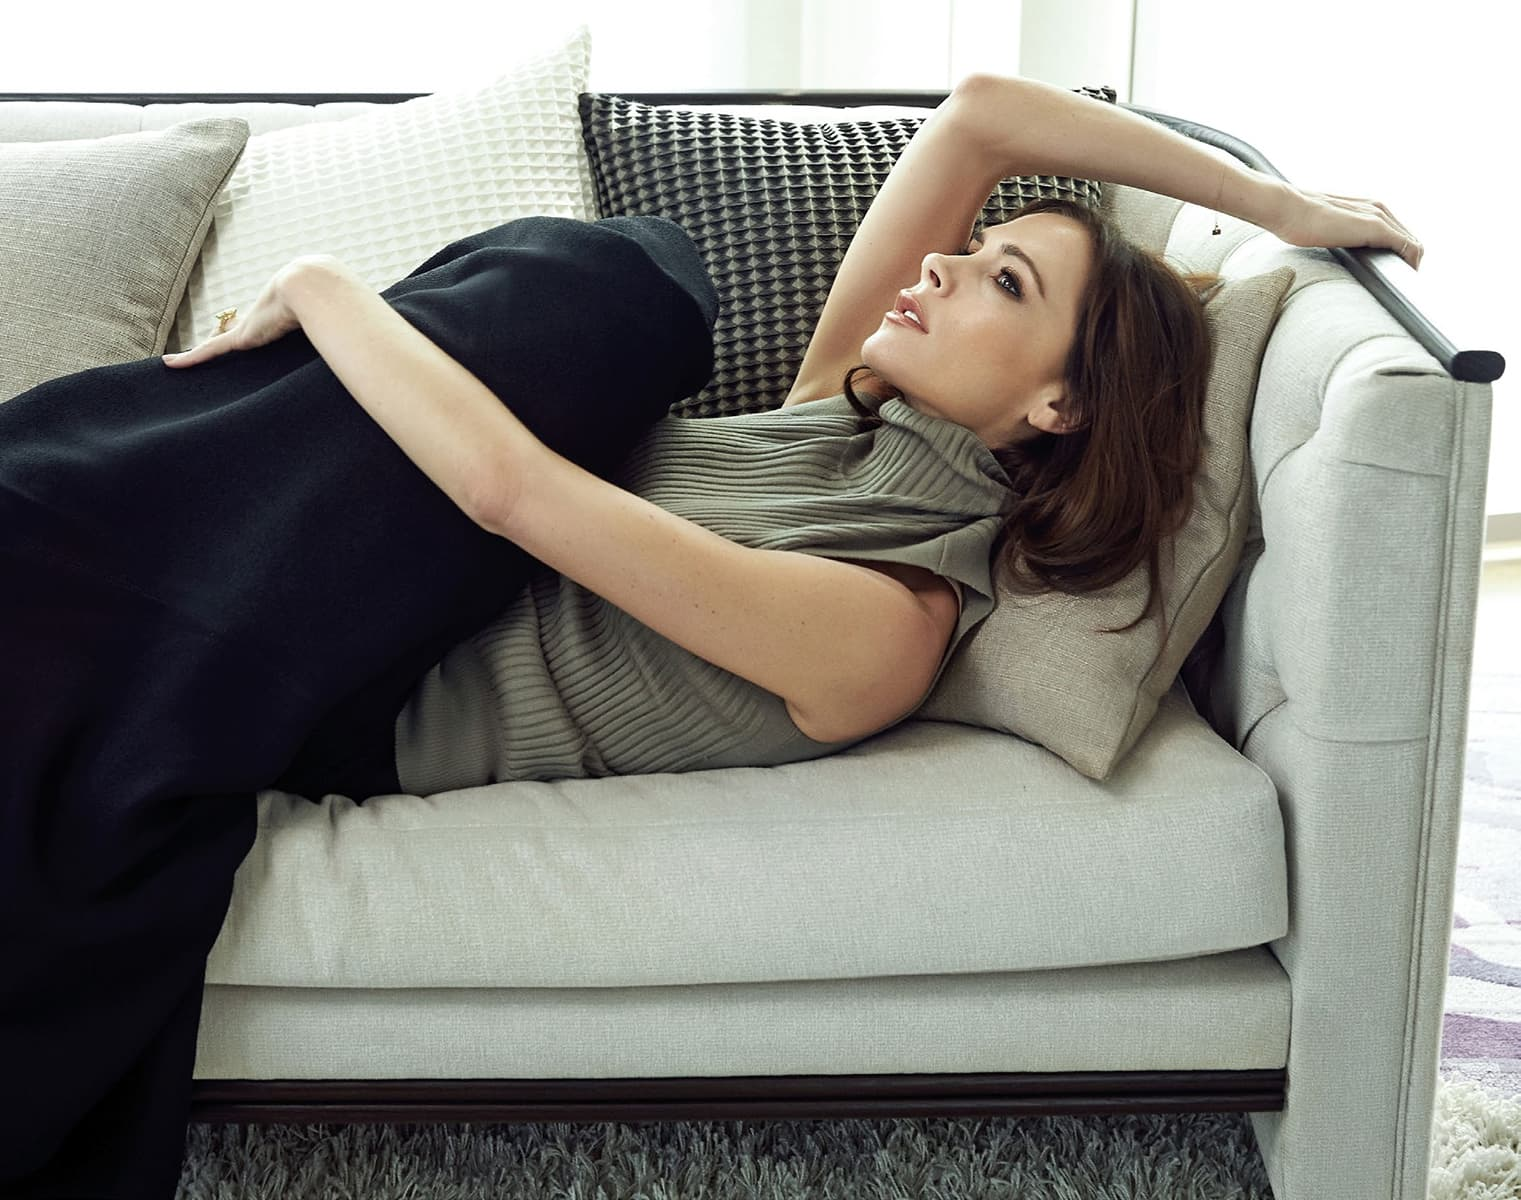 HD wallpaper of Victoria Beckham on the couch